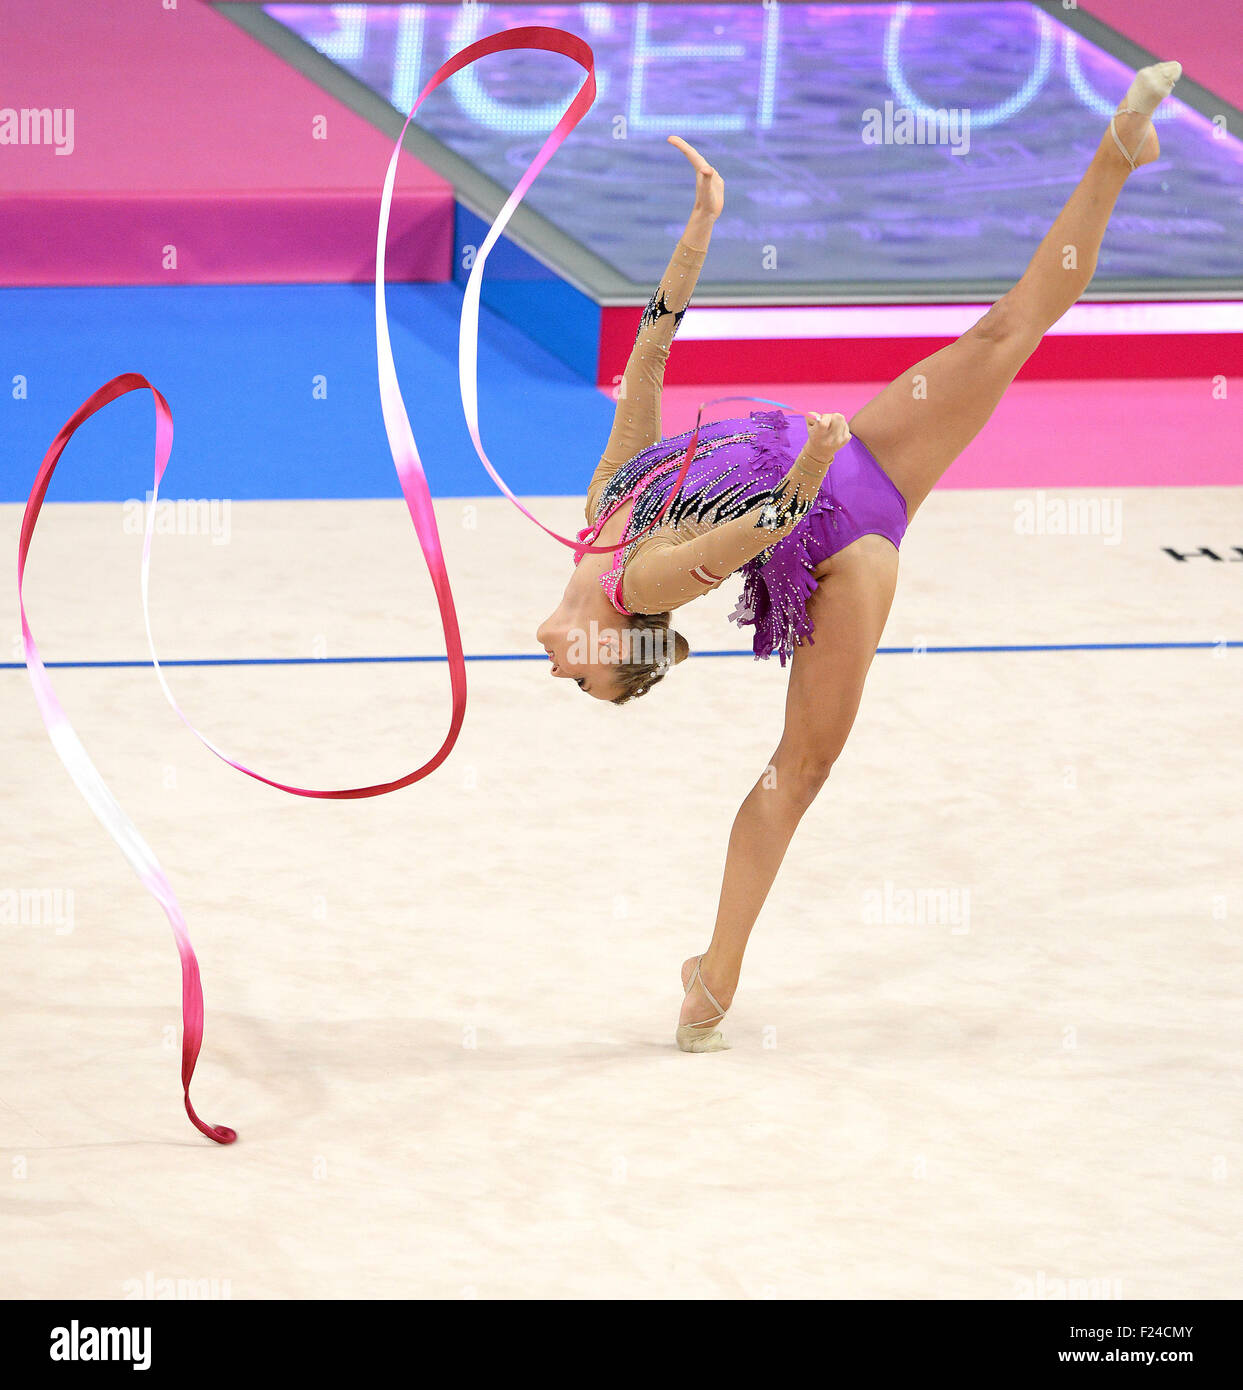 Stuttgart, Germany. 11th Sep, 2015. Nicol Ruprecht of Austria in the combined competition at the 2015 World Rhythmic - Stock Image